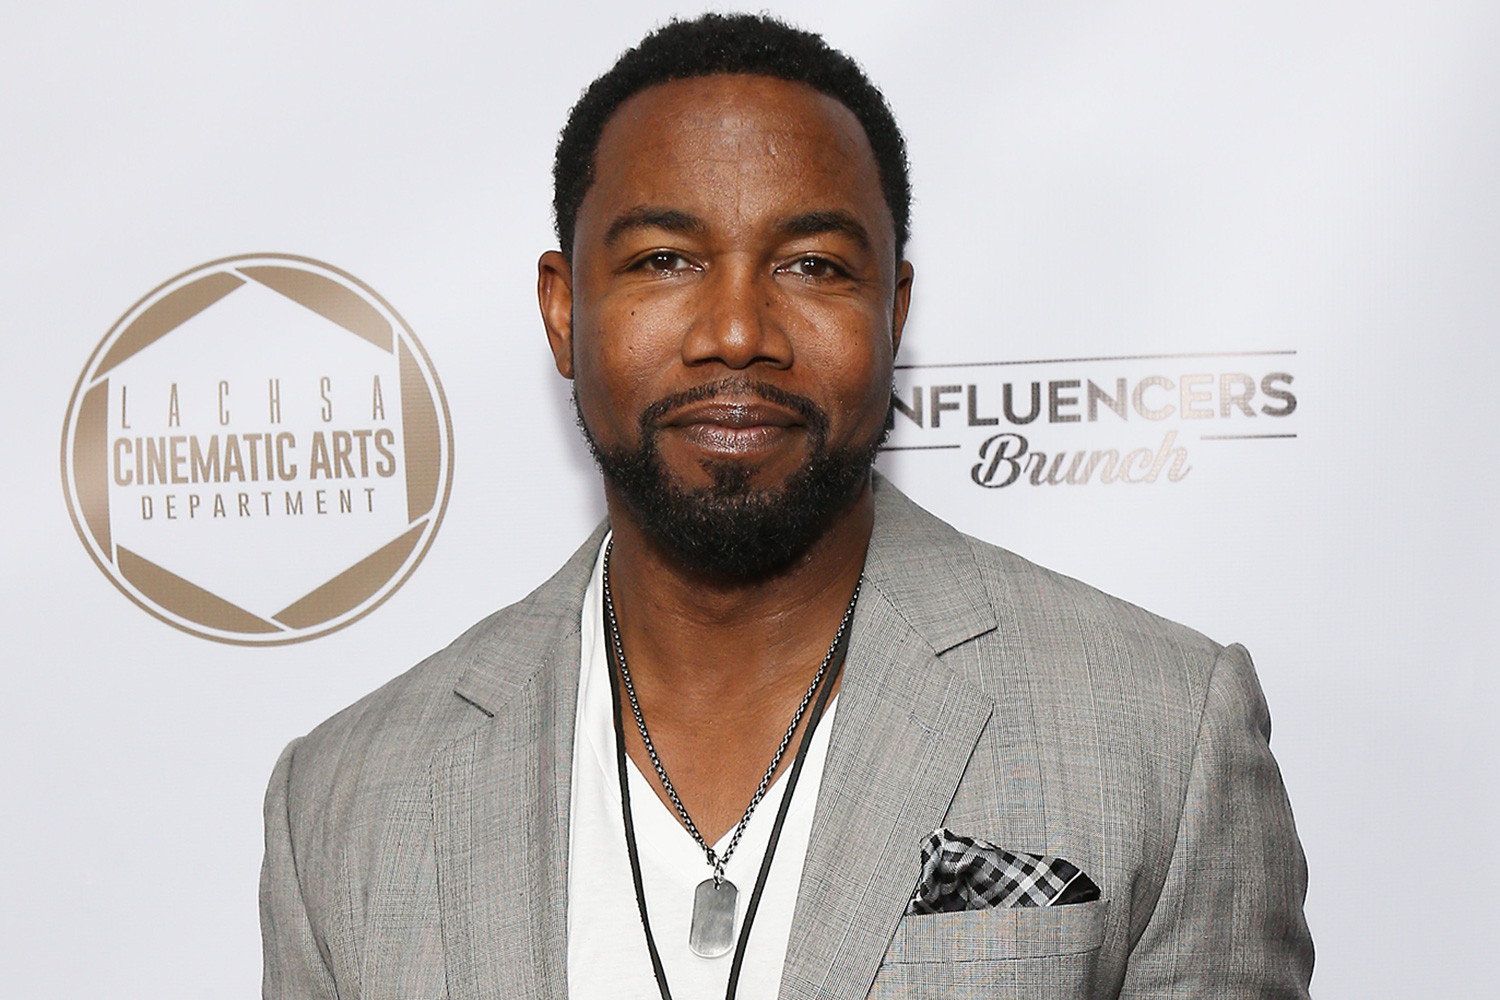 Actor Michael Jai White reveals his oldest son has passed away at 38 years of age from COVID-19